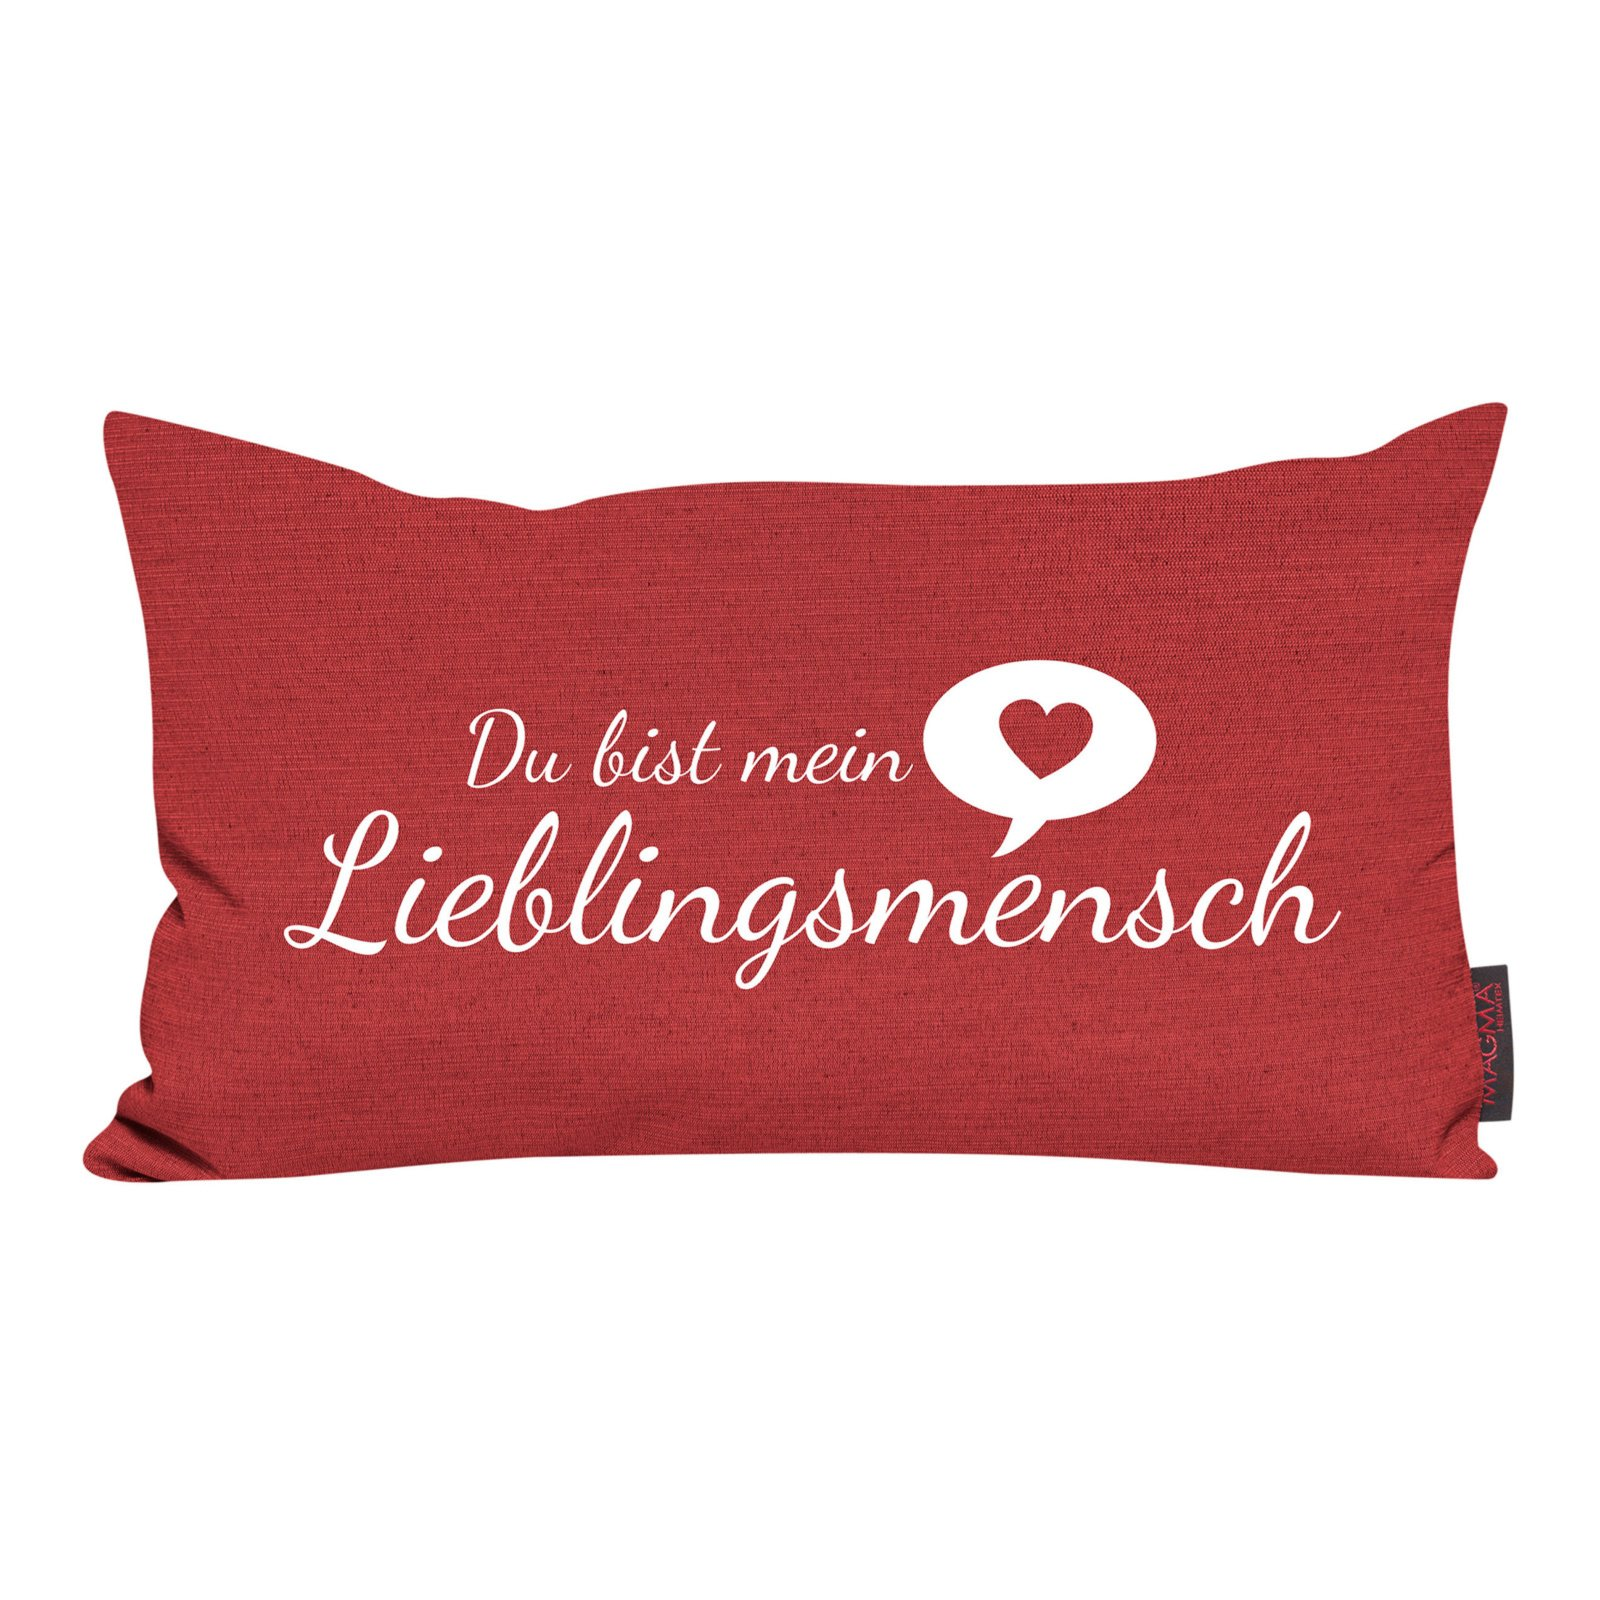 kissen rot lieblingsmensch 30x50 cm sofakissen kissen deko haushalt m belhaus roller. Black Bedroom Furniture Sets. Home Design Ideas